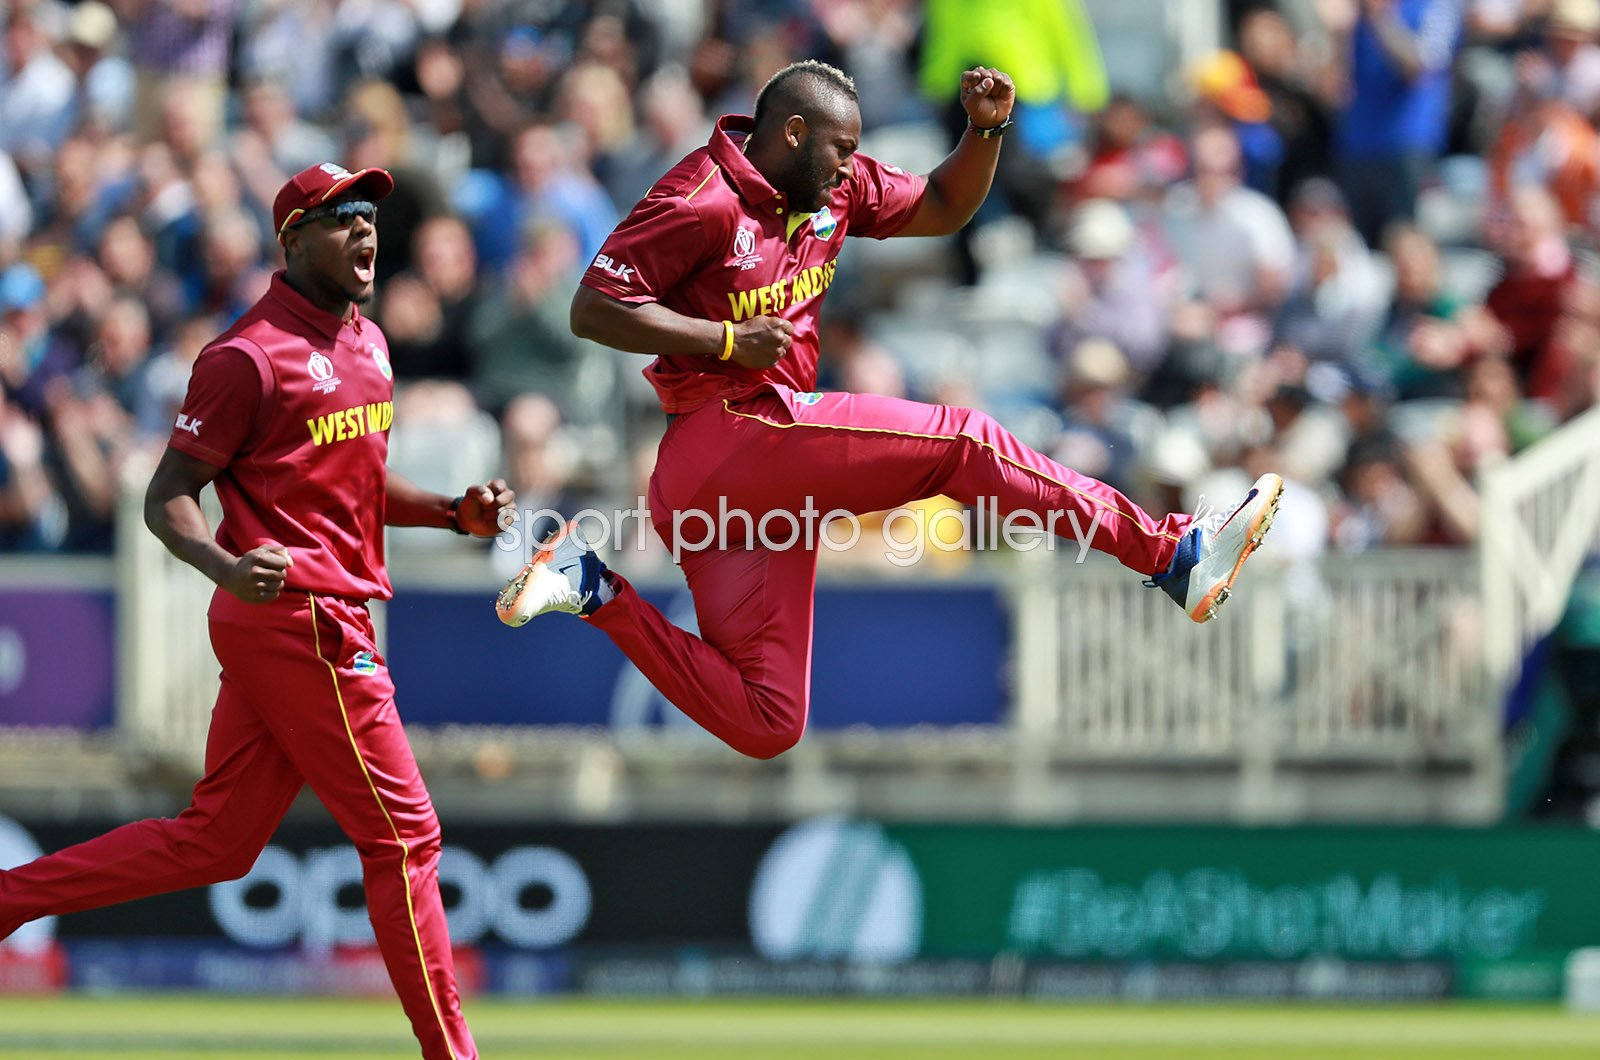 Andre Russell West Indies celebrates v Australia World Cup 2019